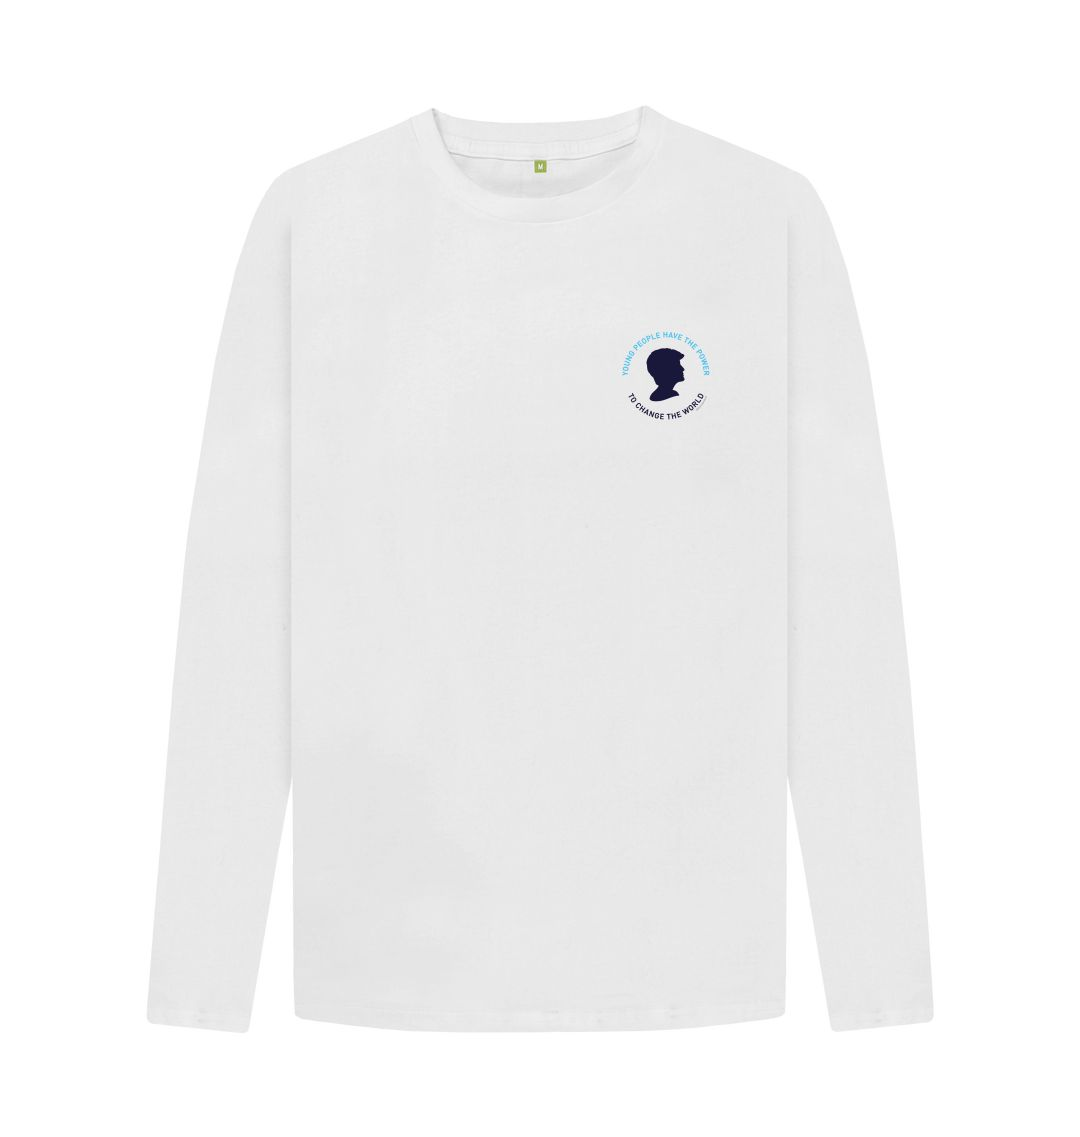 White Diana Long Sleeve Tee (Unisex)